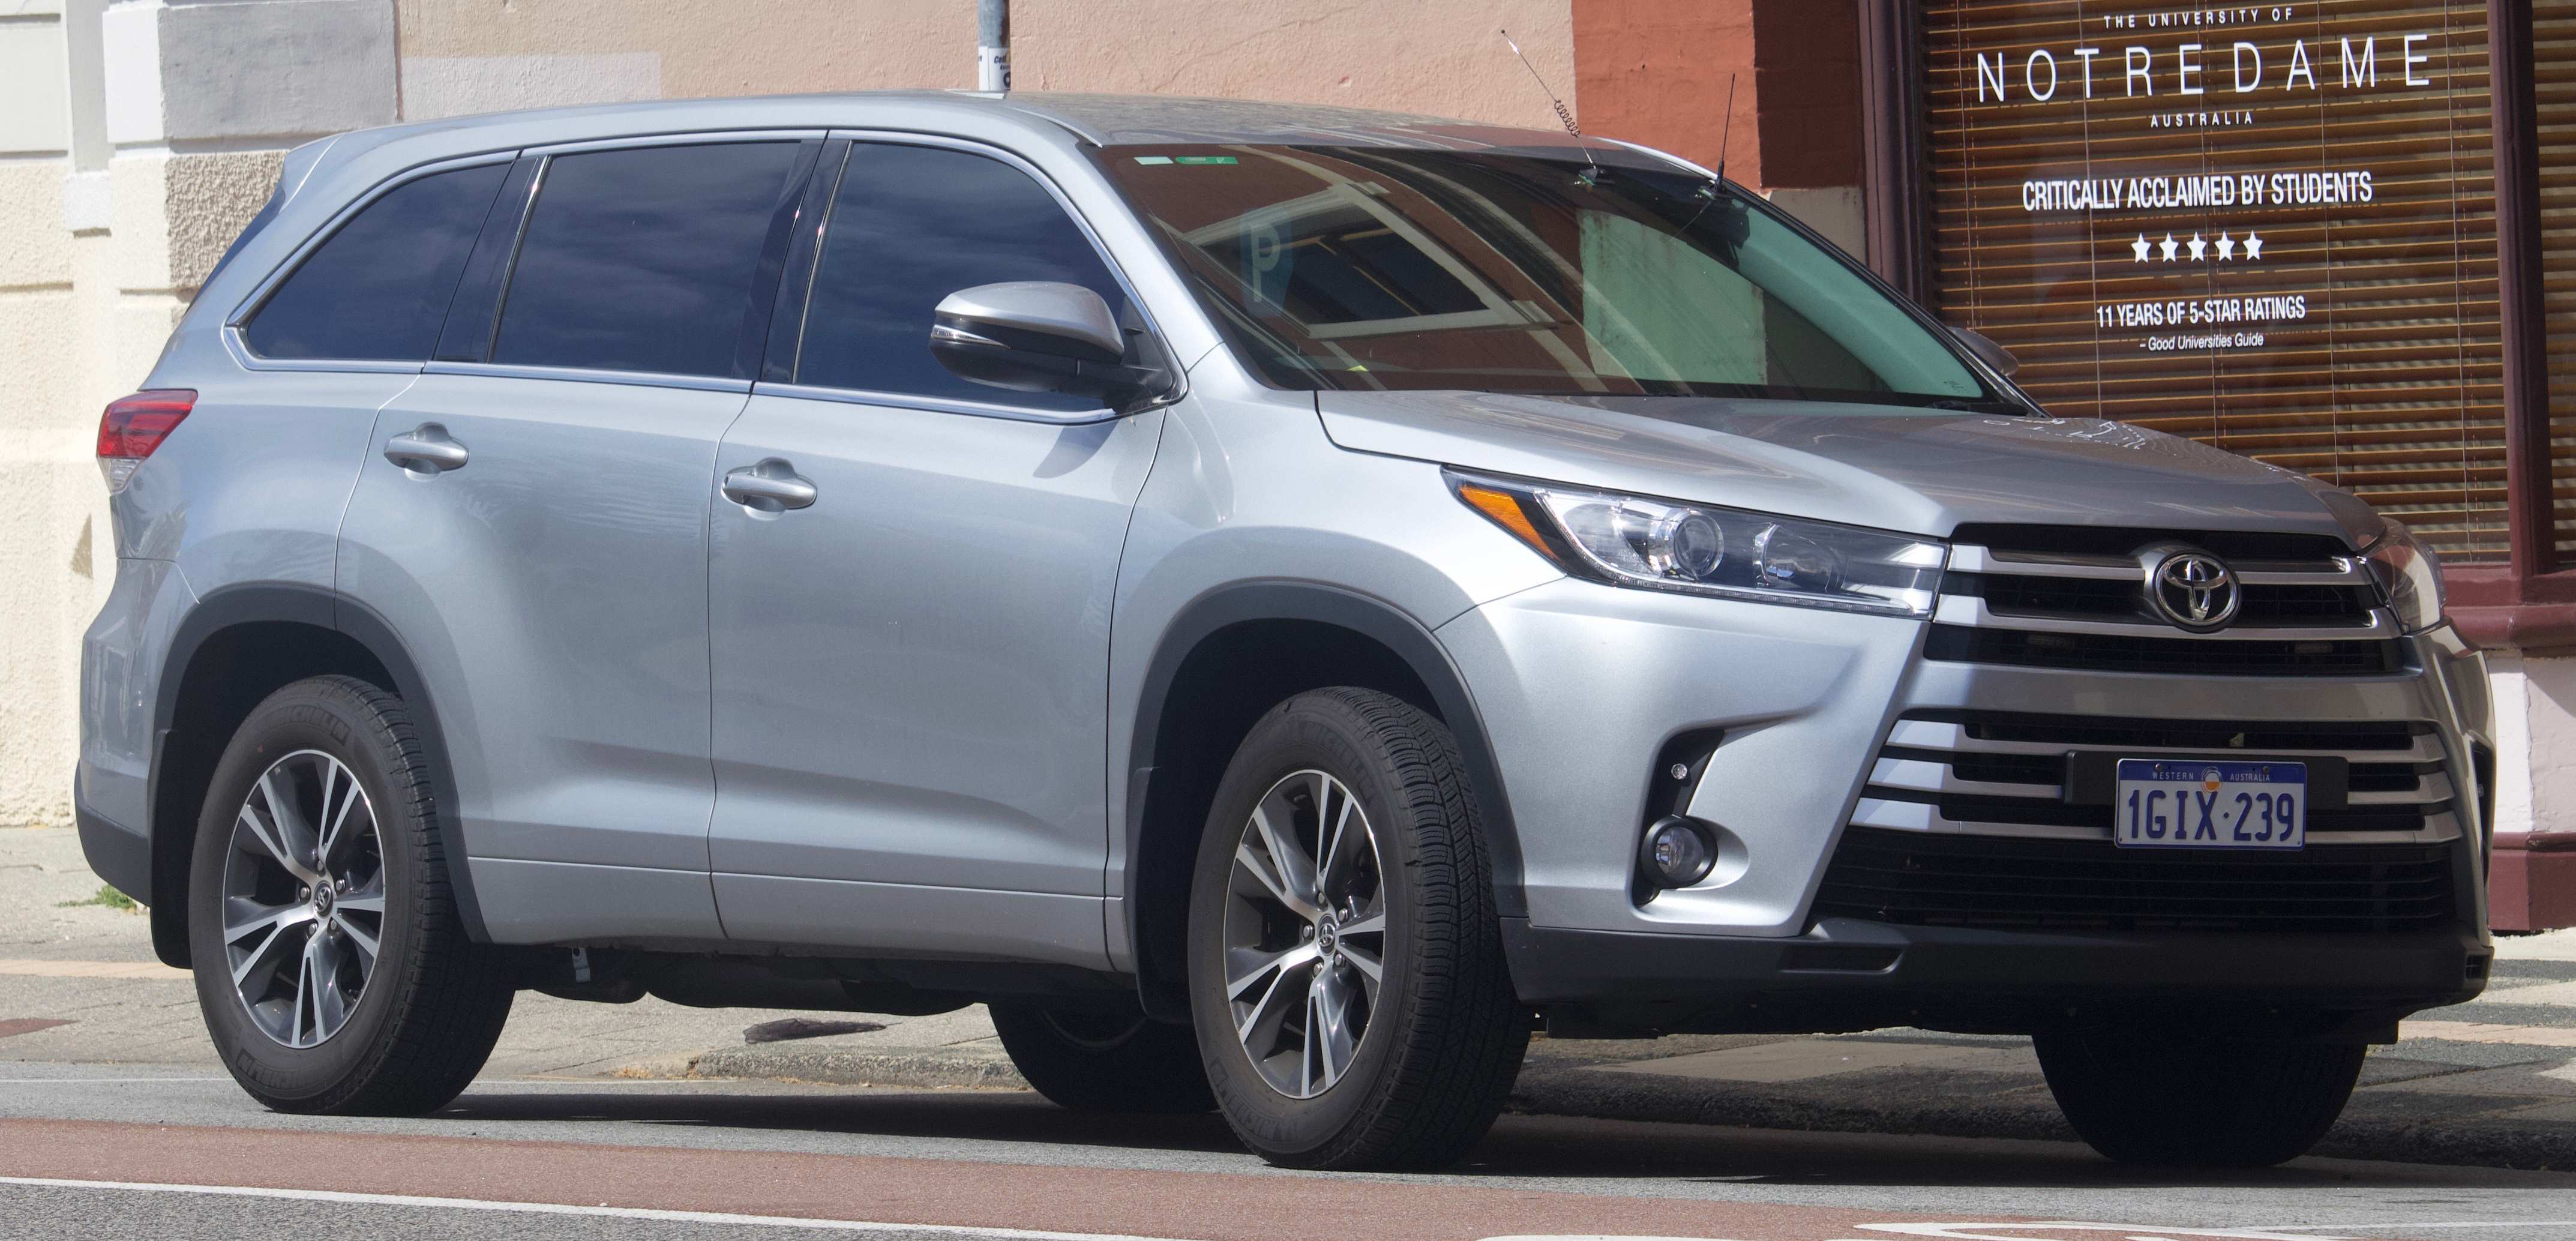 85 Best Review The Toyota Highlander 2019 Redesign Concept Spesification for The Toyota Highlander 2019 Redesign Concept